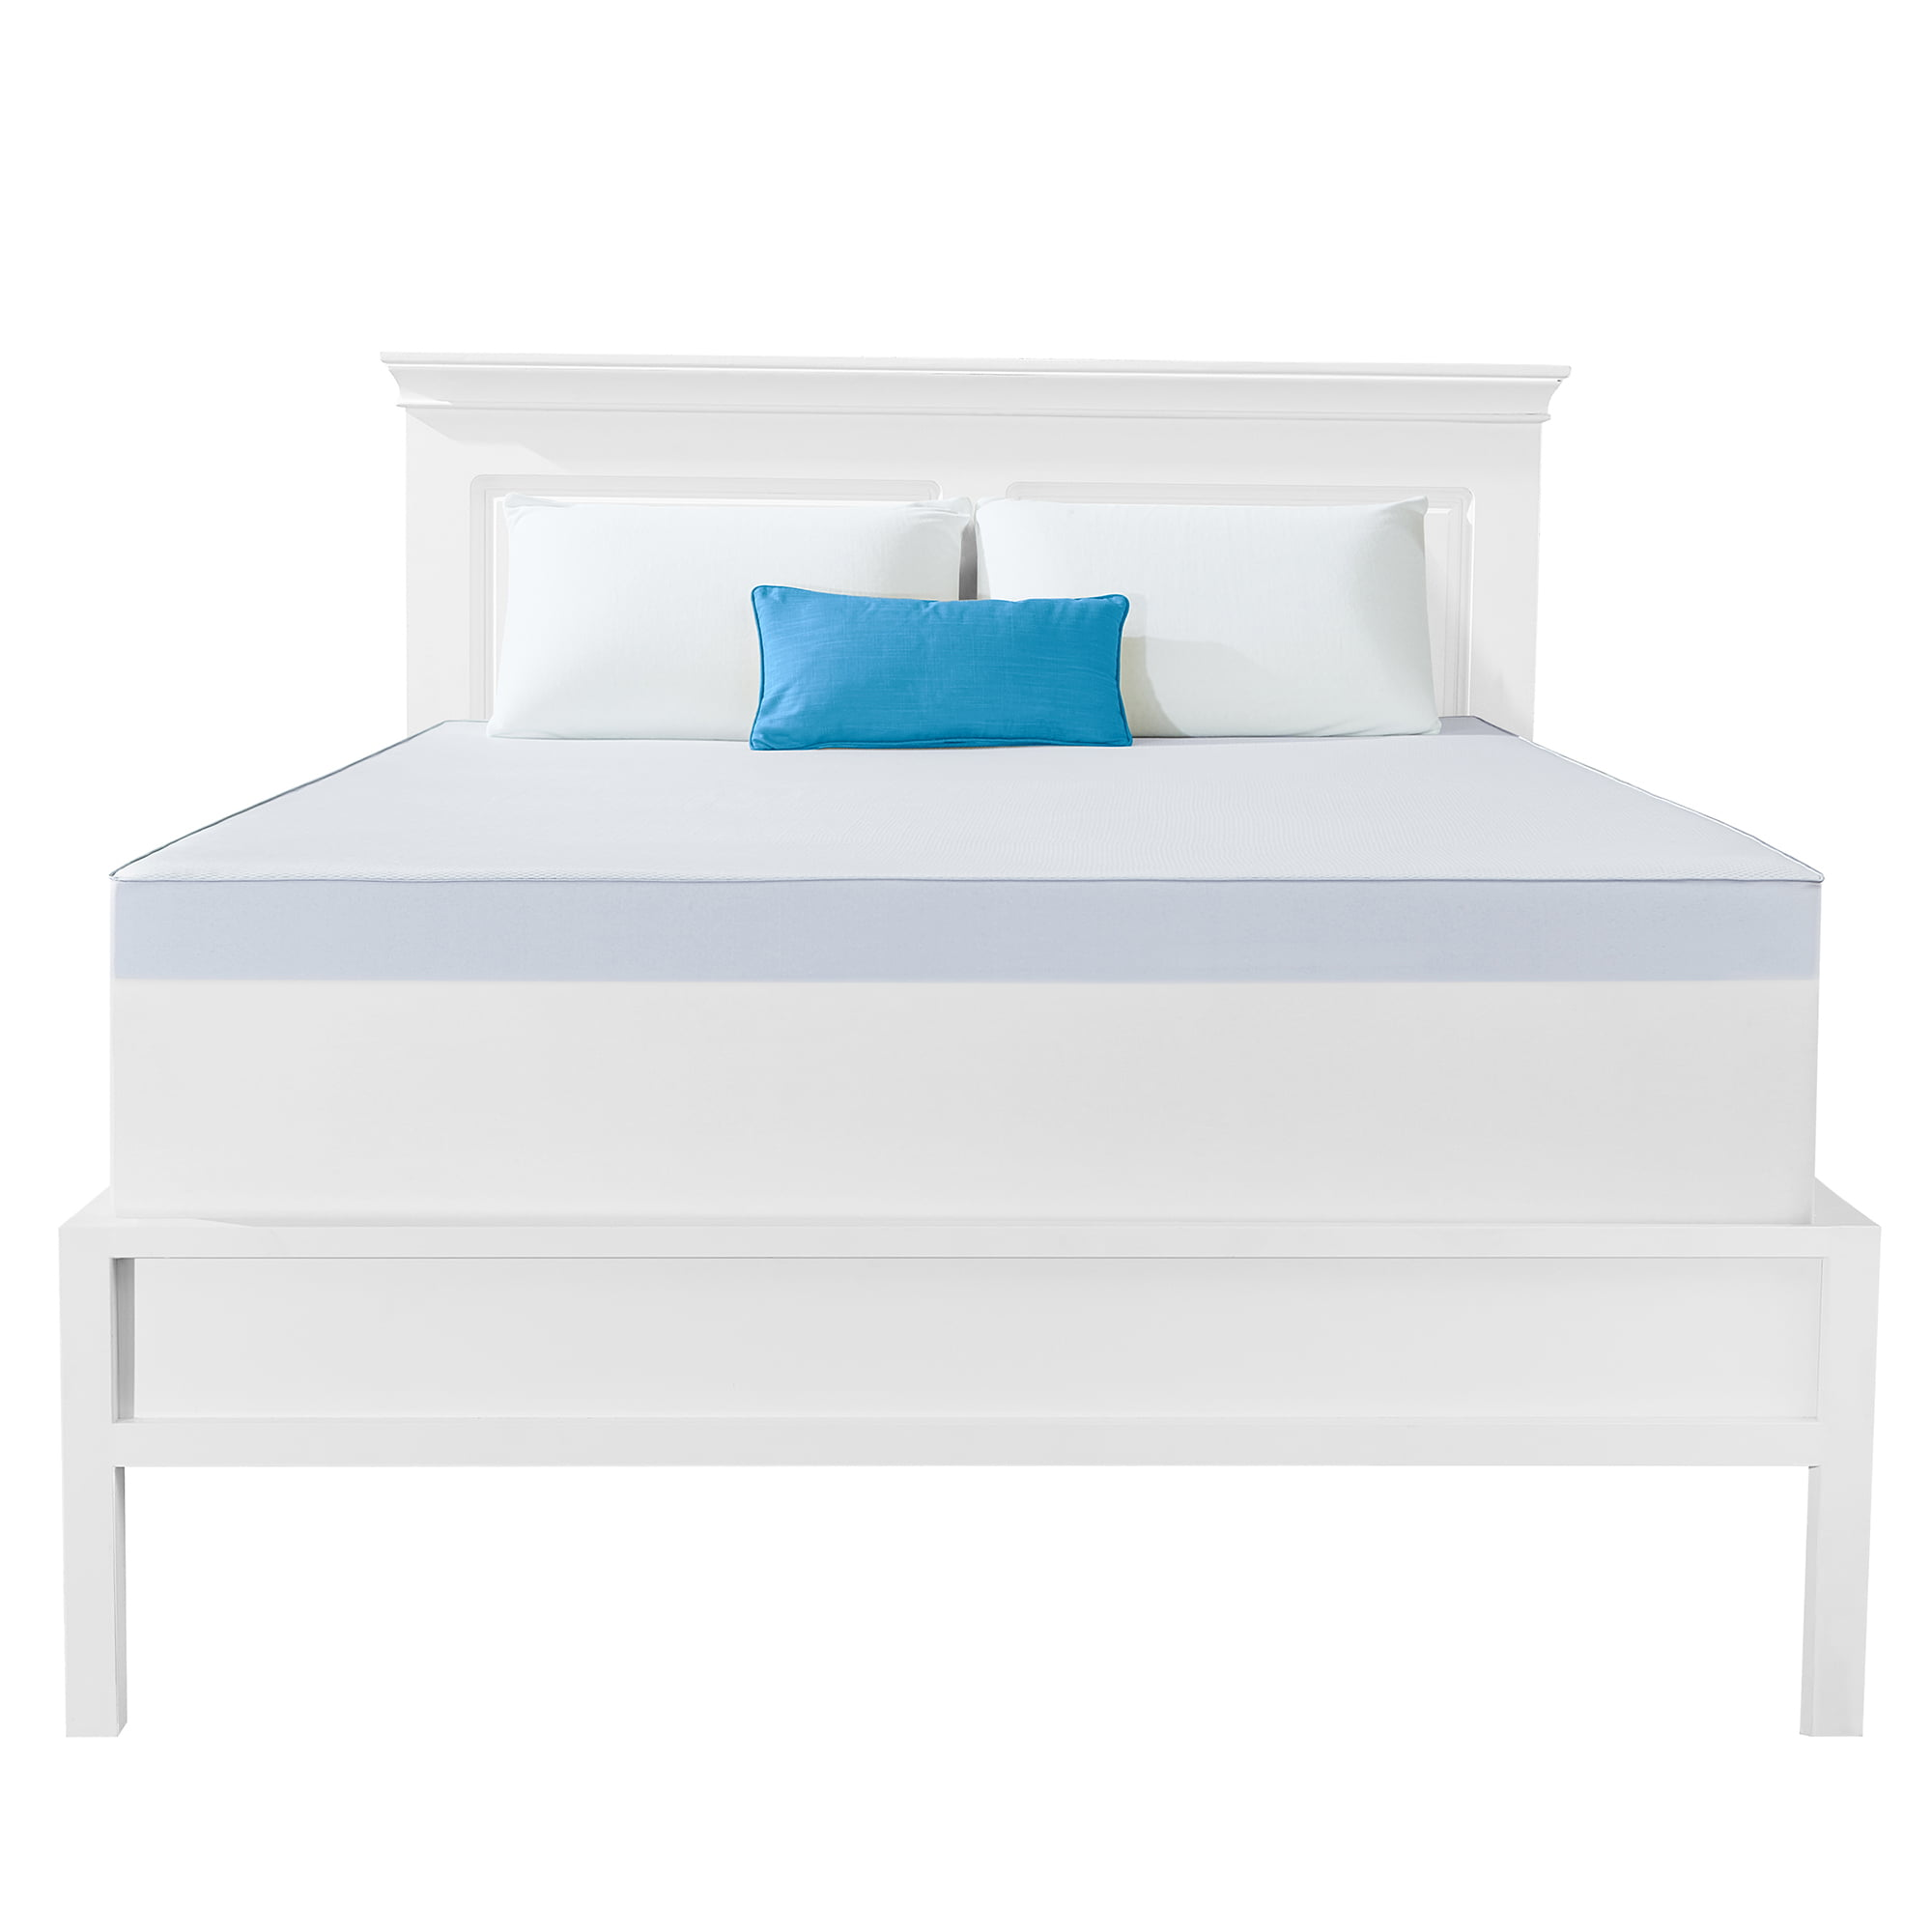 Dream Serenity 3 Inch Gel Memory Foam Topper With Cooling